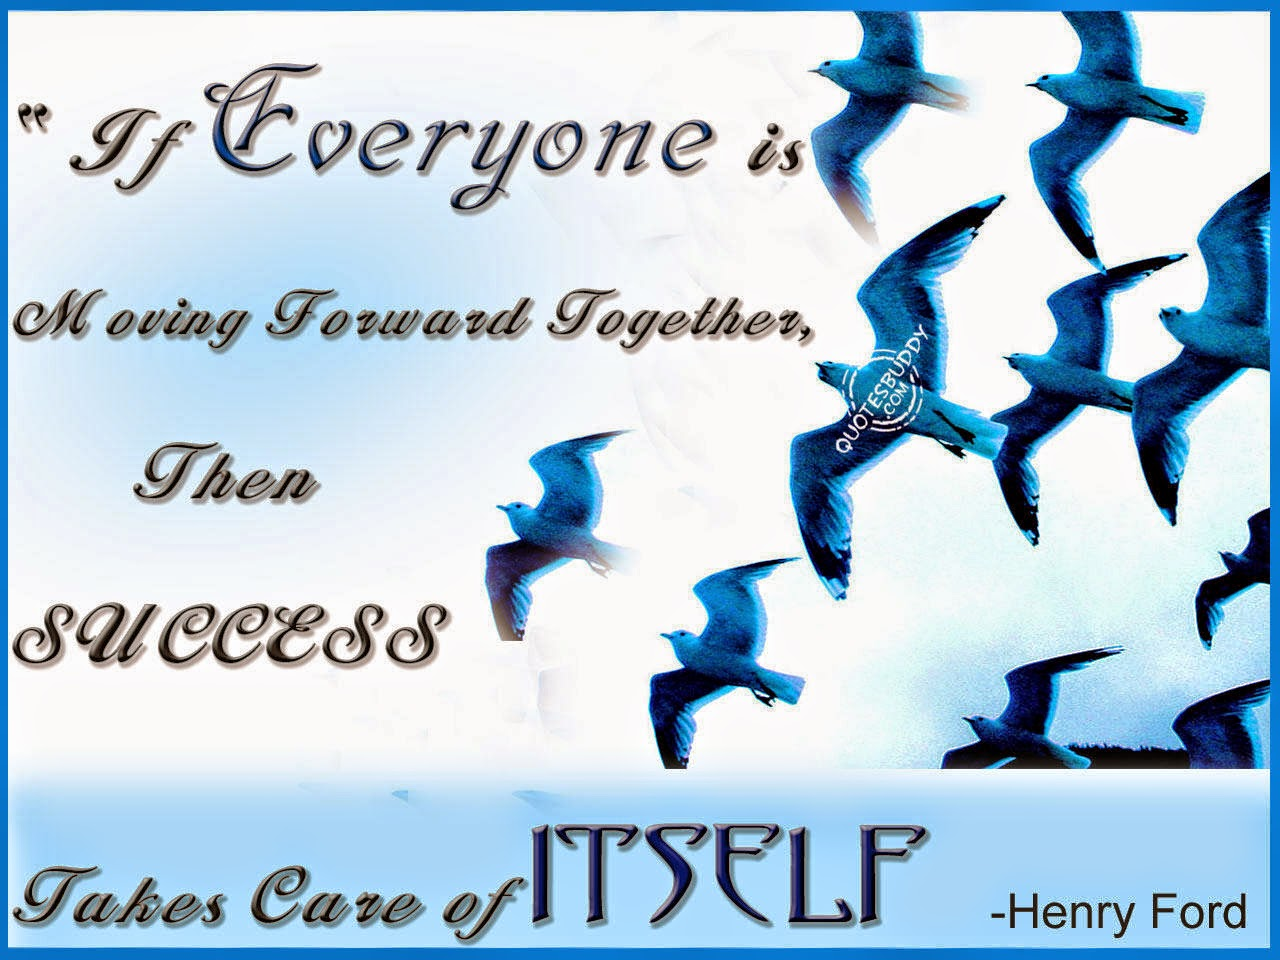 Teamwork Quotes   Clipart Panda - Free Clipart Images  Teamwork Quotes Tumblr